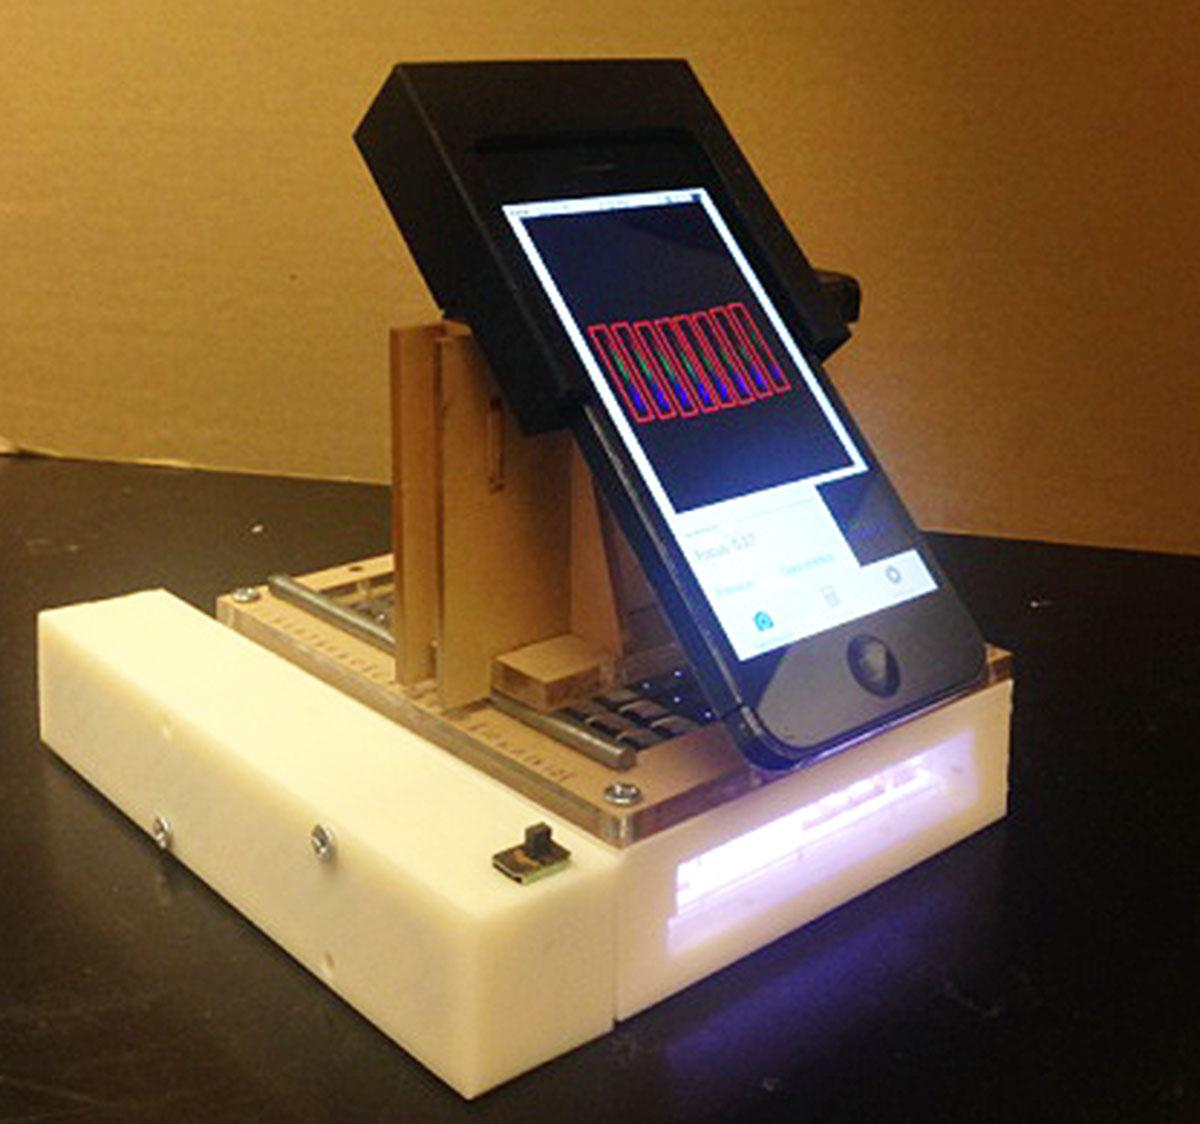 Researchers use iPhone to develop mobile cancer detection lab